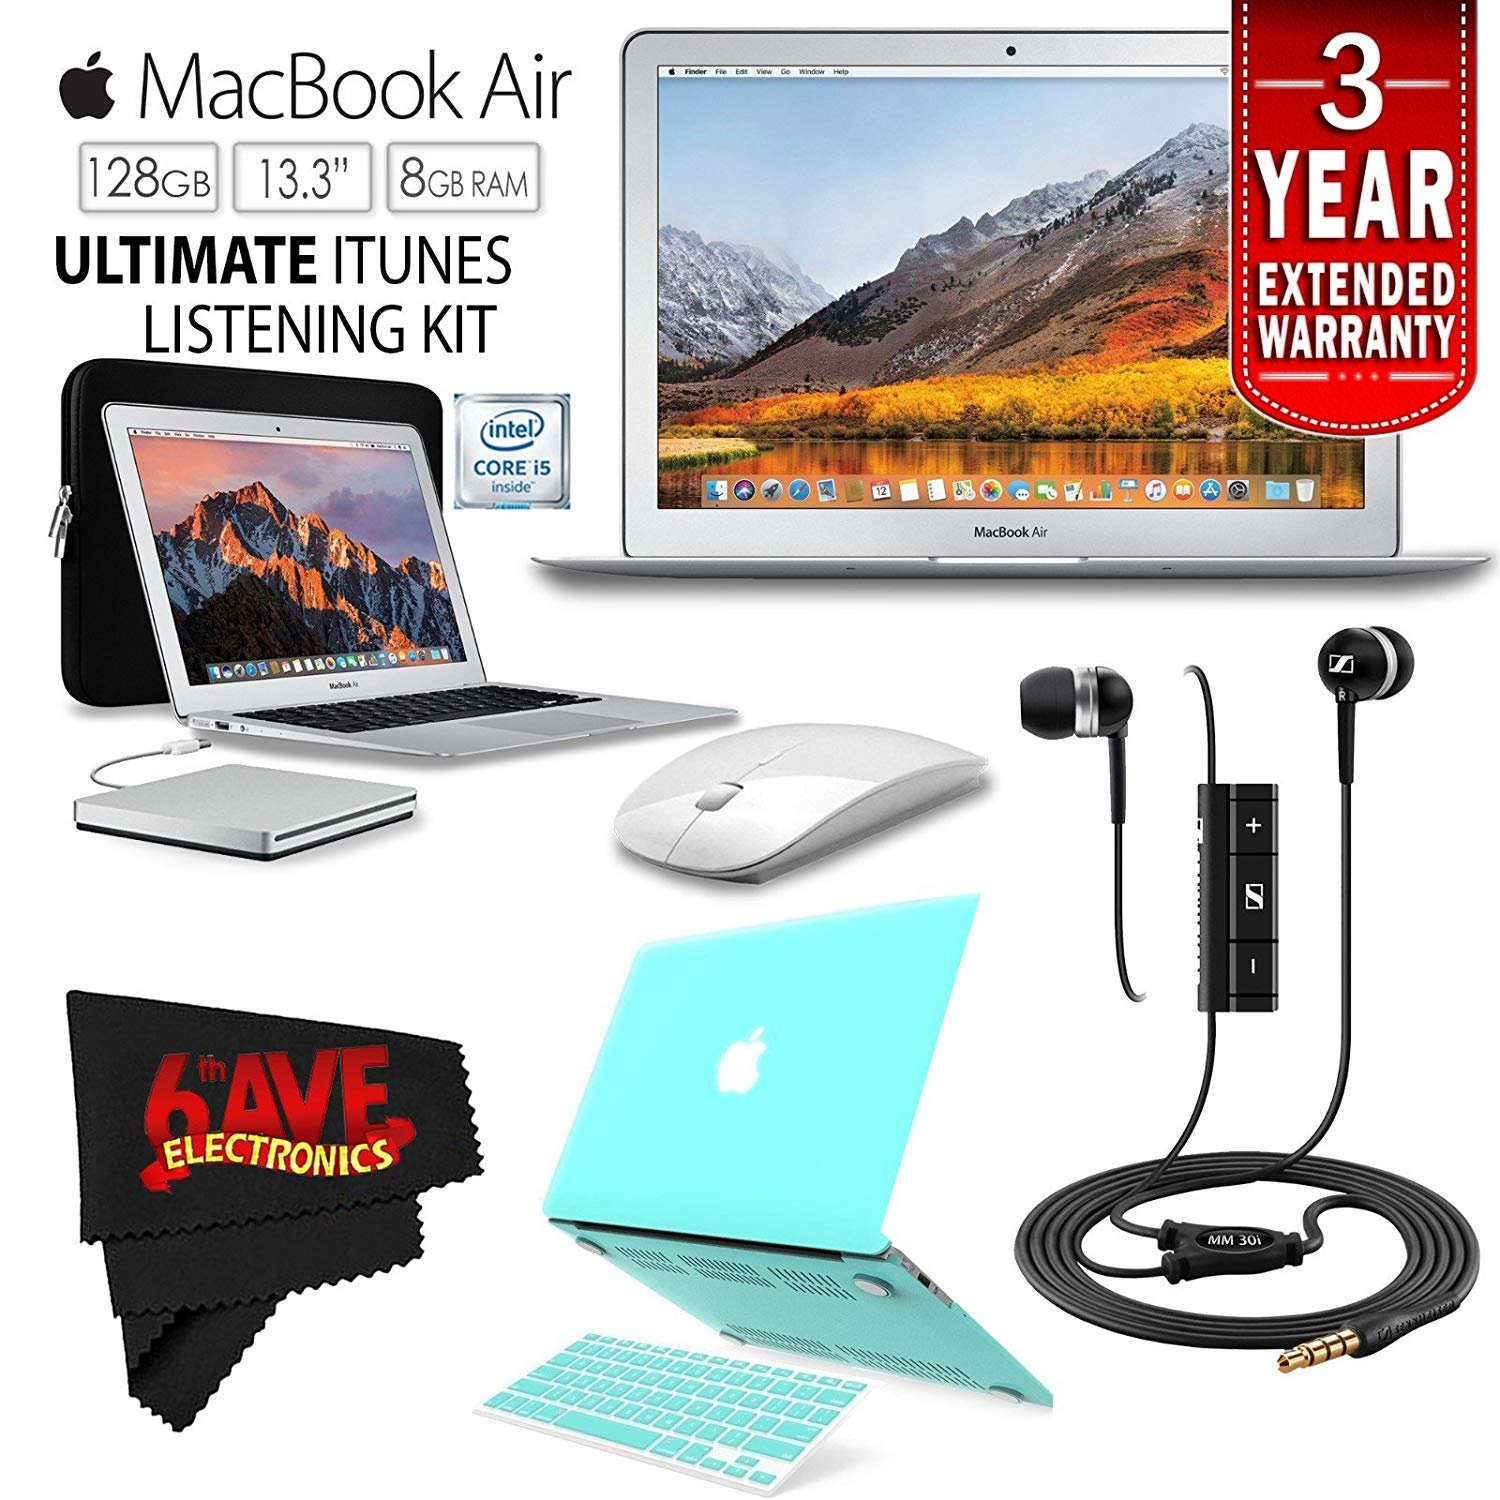 "6Ave Apple 13.3"" MacBook Air 128GB SSD (MQD32LL/A) + iBenzer Basic Soft-Touch Series Plastic Hard Case & Keyboard Cover for Apple Macbook Air 13-inch 13"" (Turquoise) + Apple USB SuperDrive Bundle"